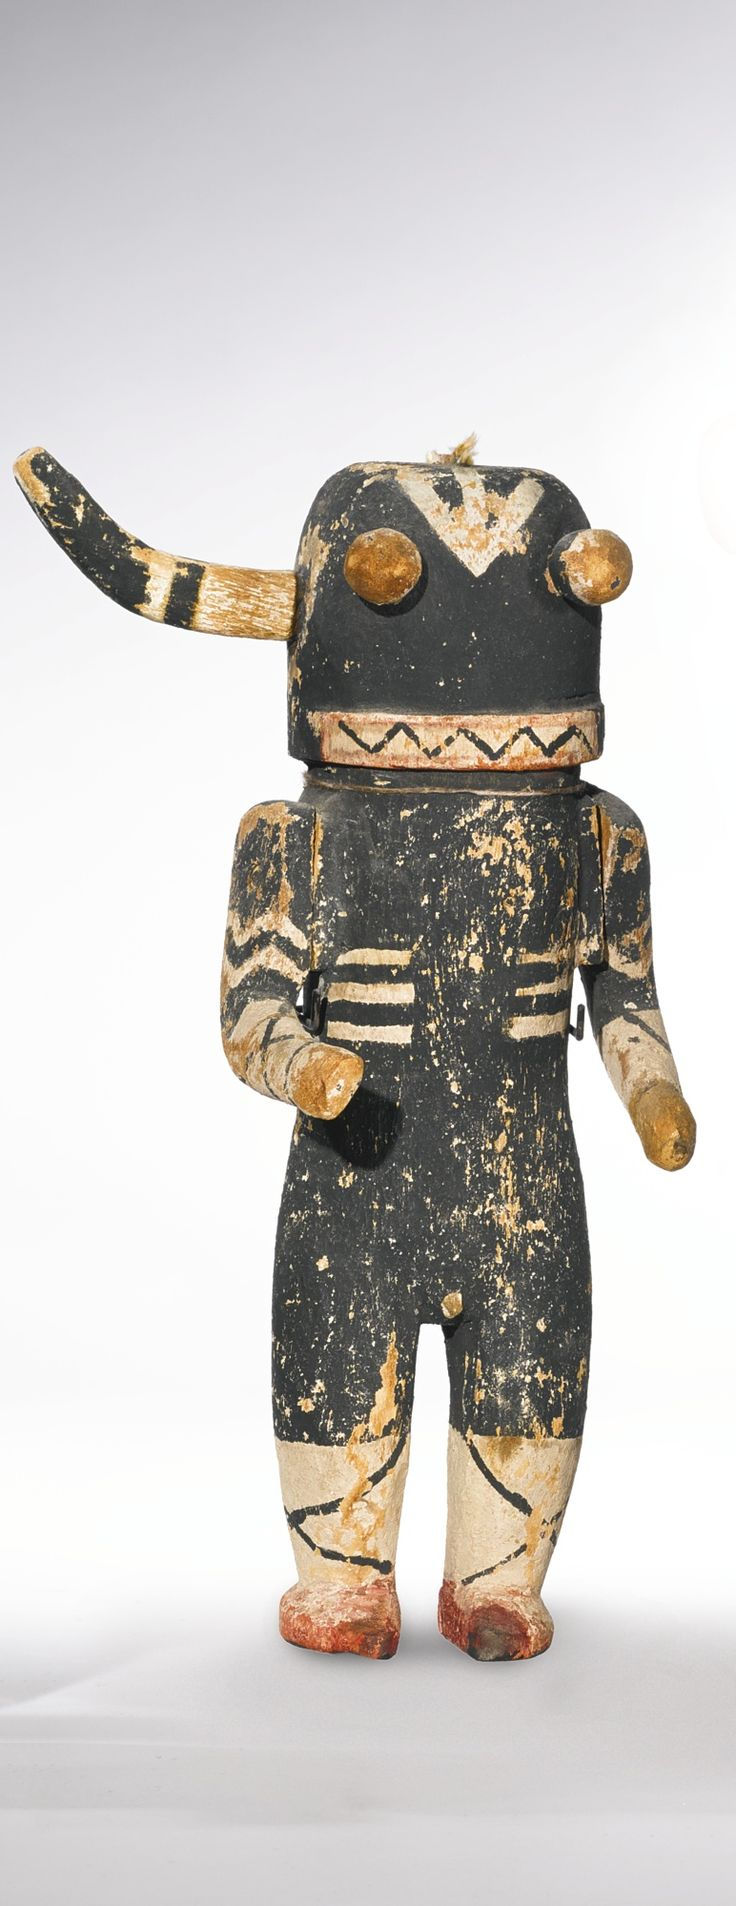 Hopi Polychromed Wood Kachina Doll - I know this isn't a soft toy but it has an amazing design.